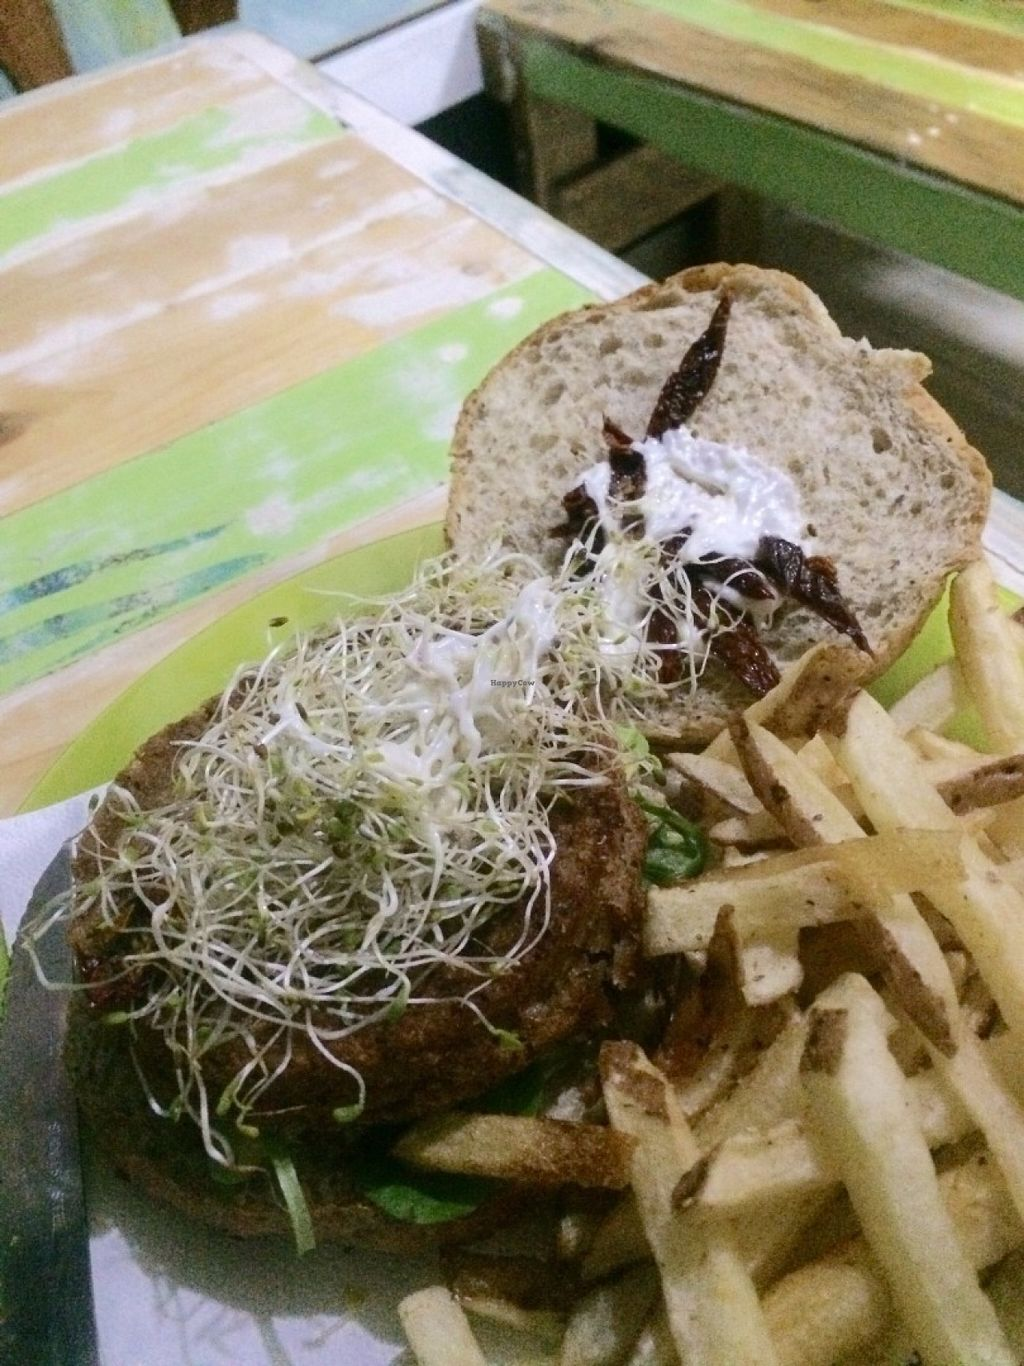 """Photo of D.Sanchez Fresh Food  by <a href=""""/members/profile/ellengdx"""">ellengdx</a> <br/>'Original' burger with the black bean patty <br/> July 16, 2016  - <a href='/contact/abuse/image/60375/160171'>Report</a>"""